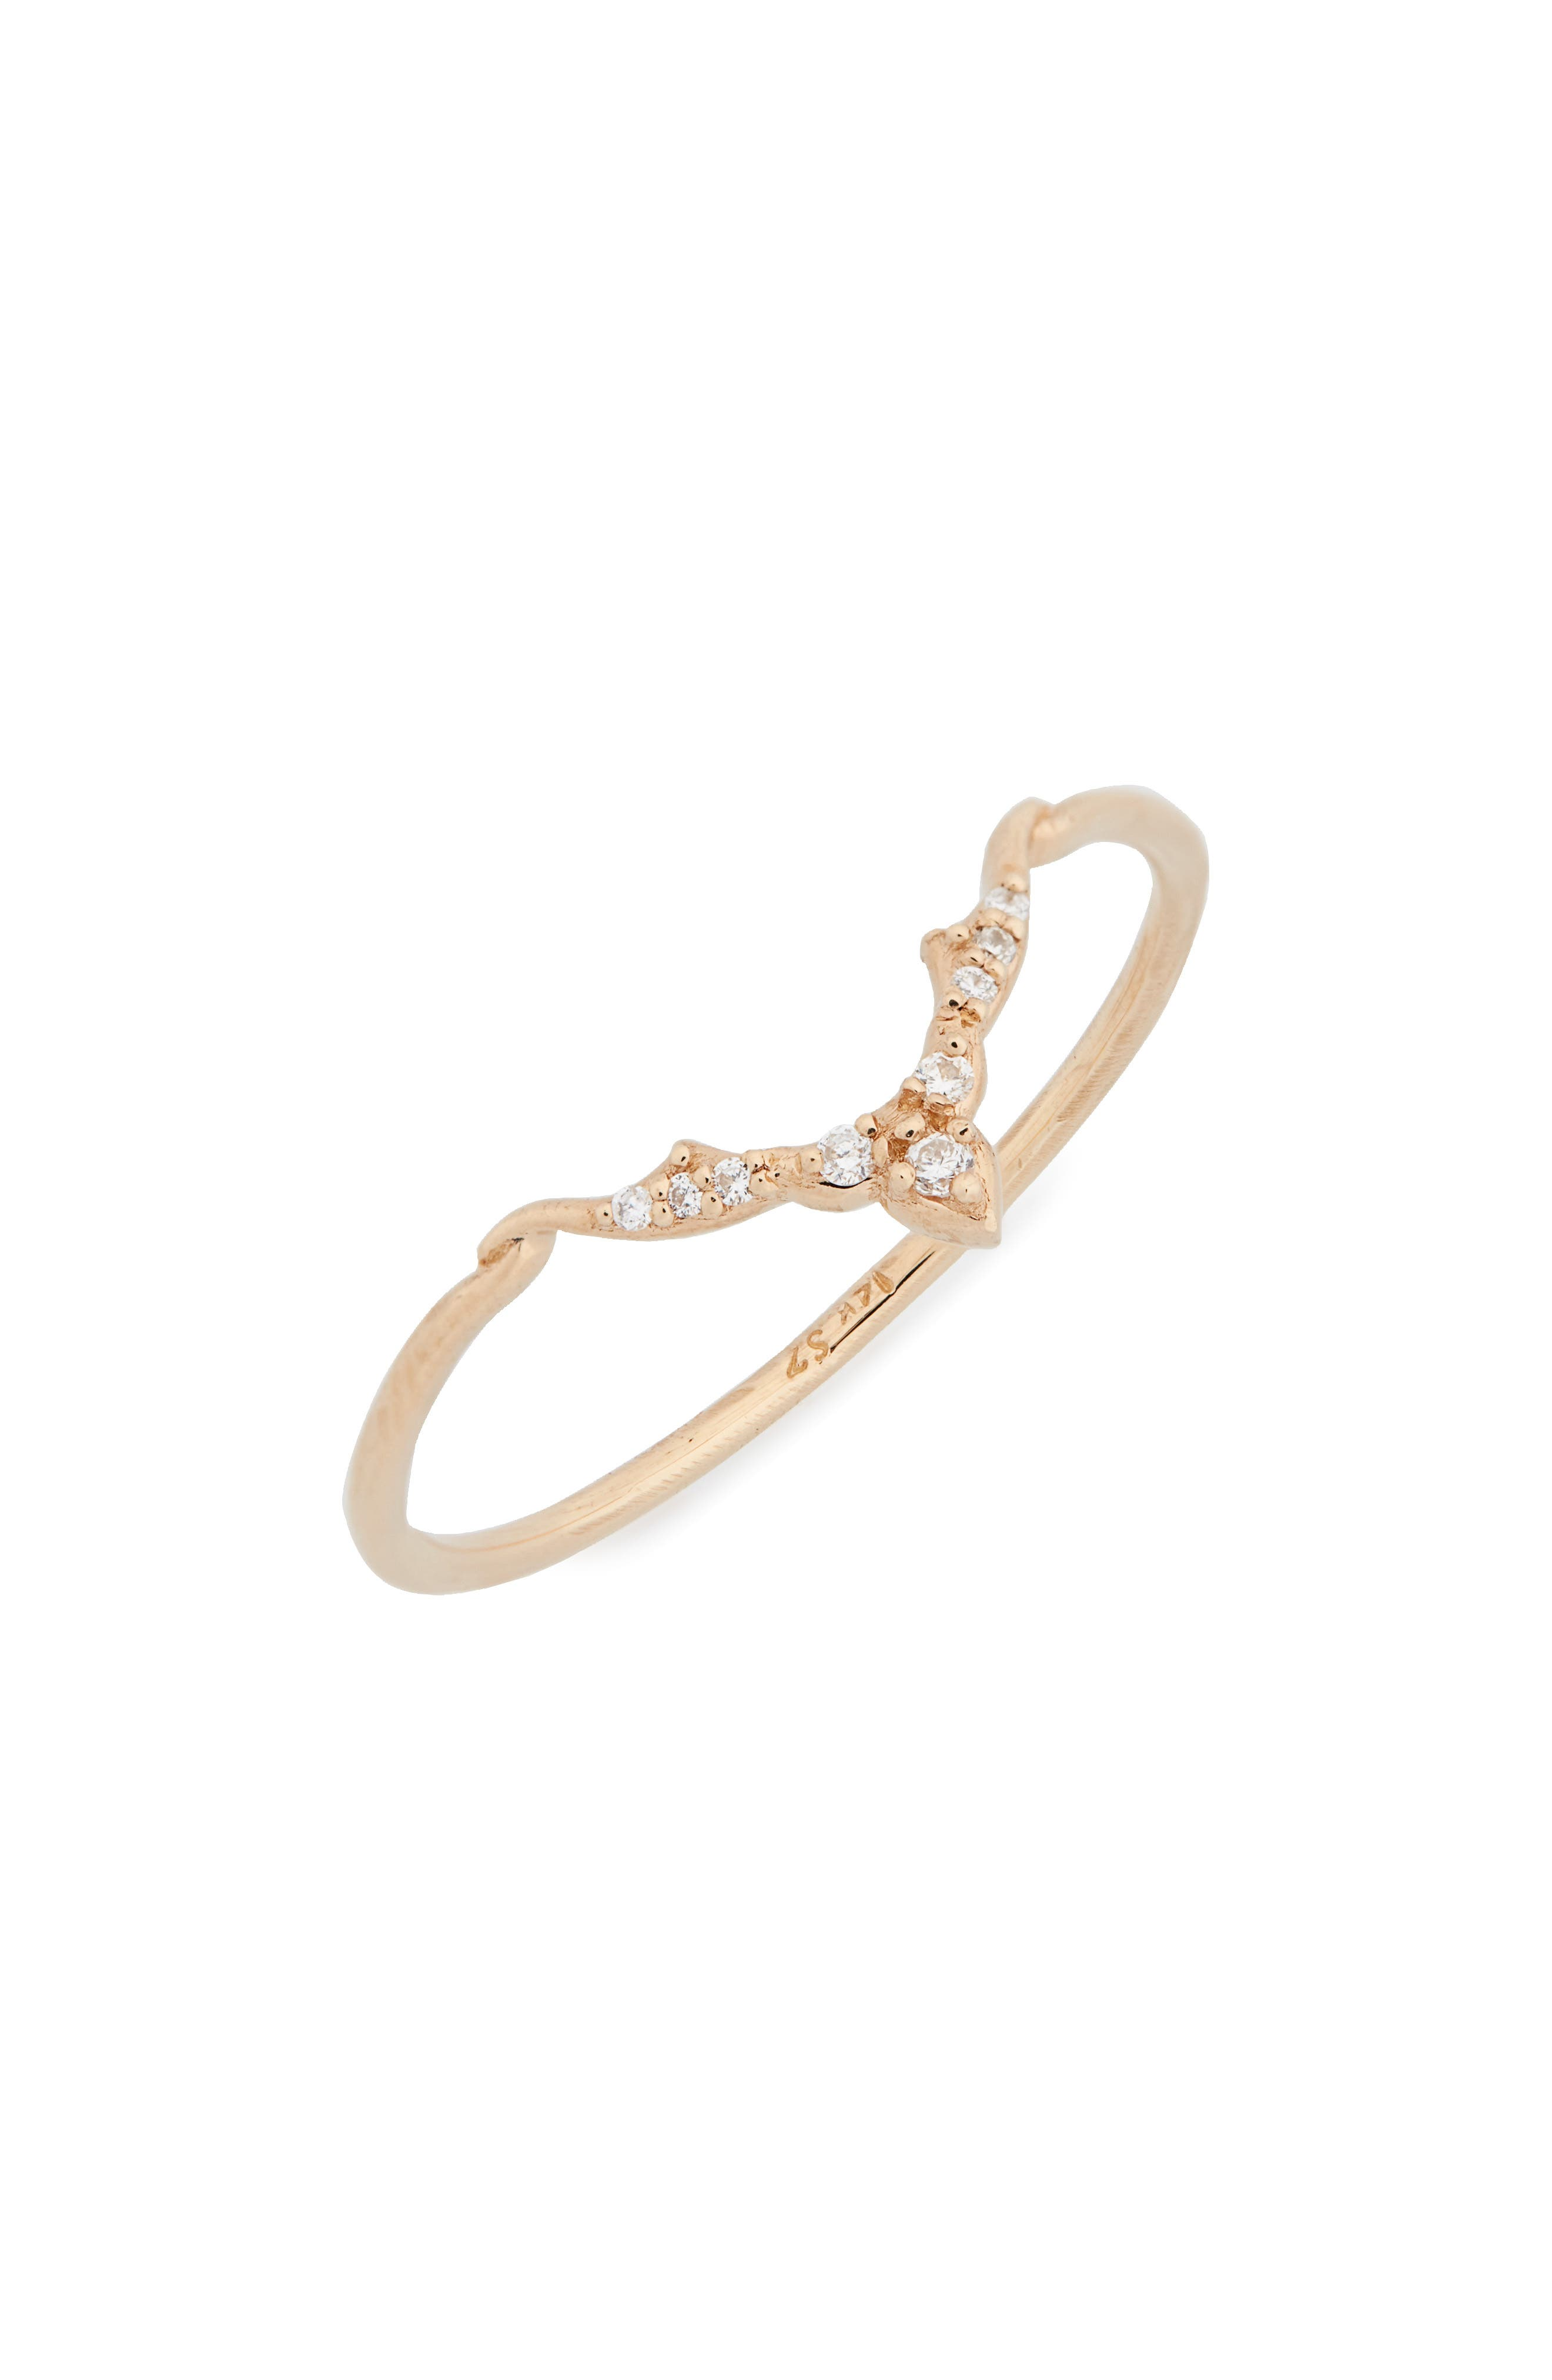 Altair Diamond Ring,                         Main,                         color, GOLD